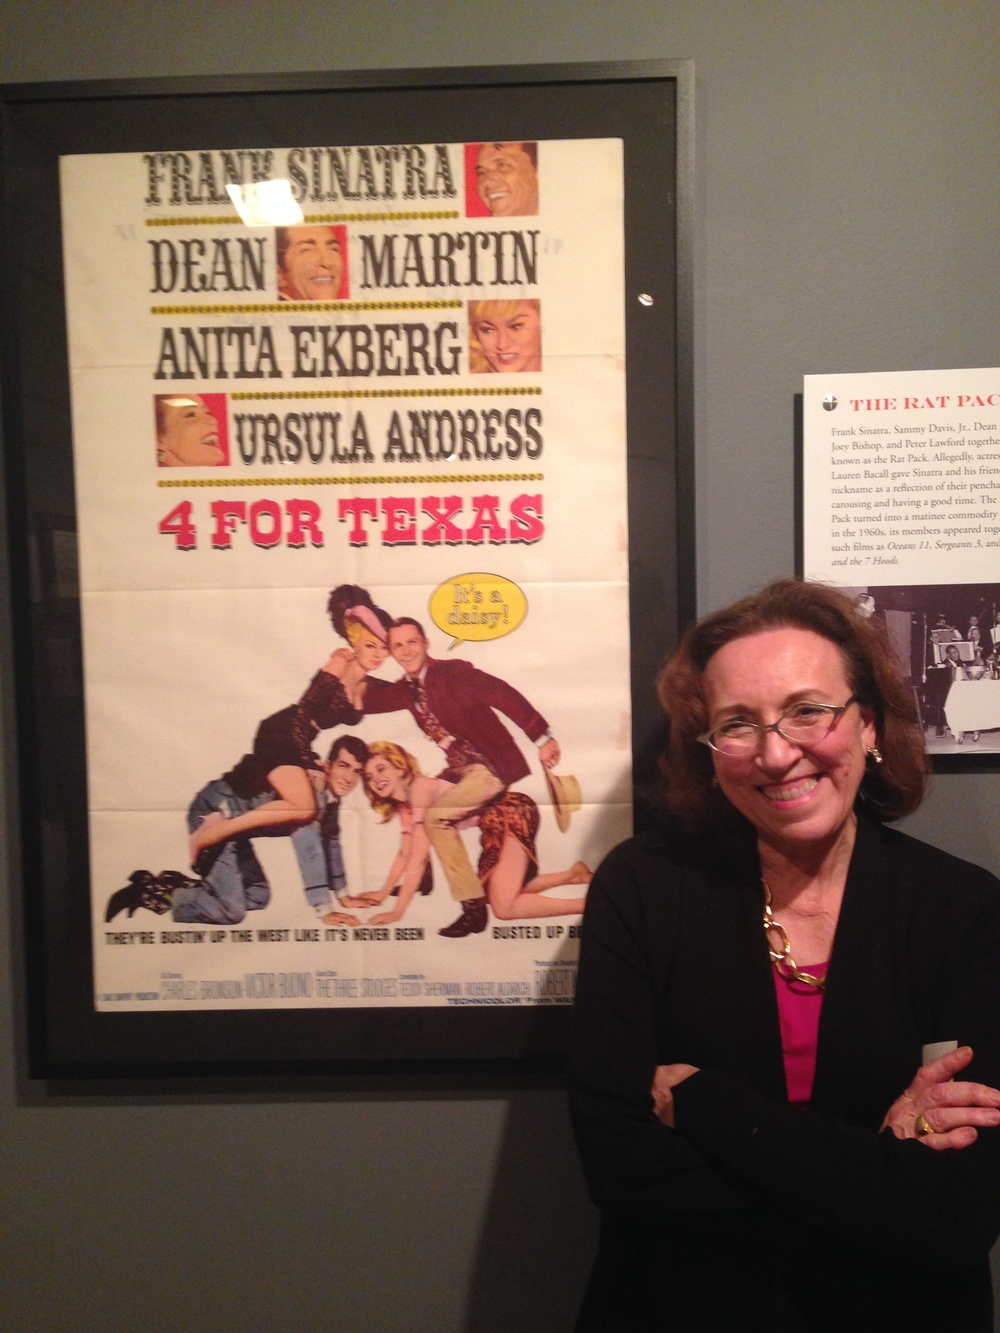 Emily Rossi-Snook with a poster from The Strand.